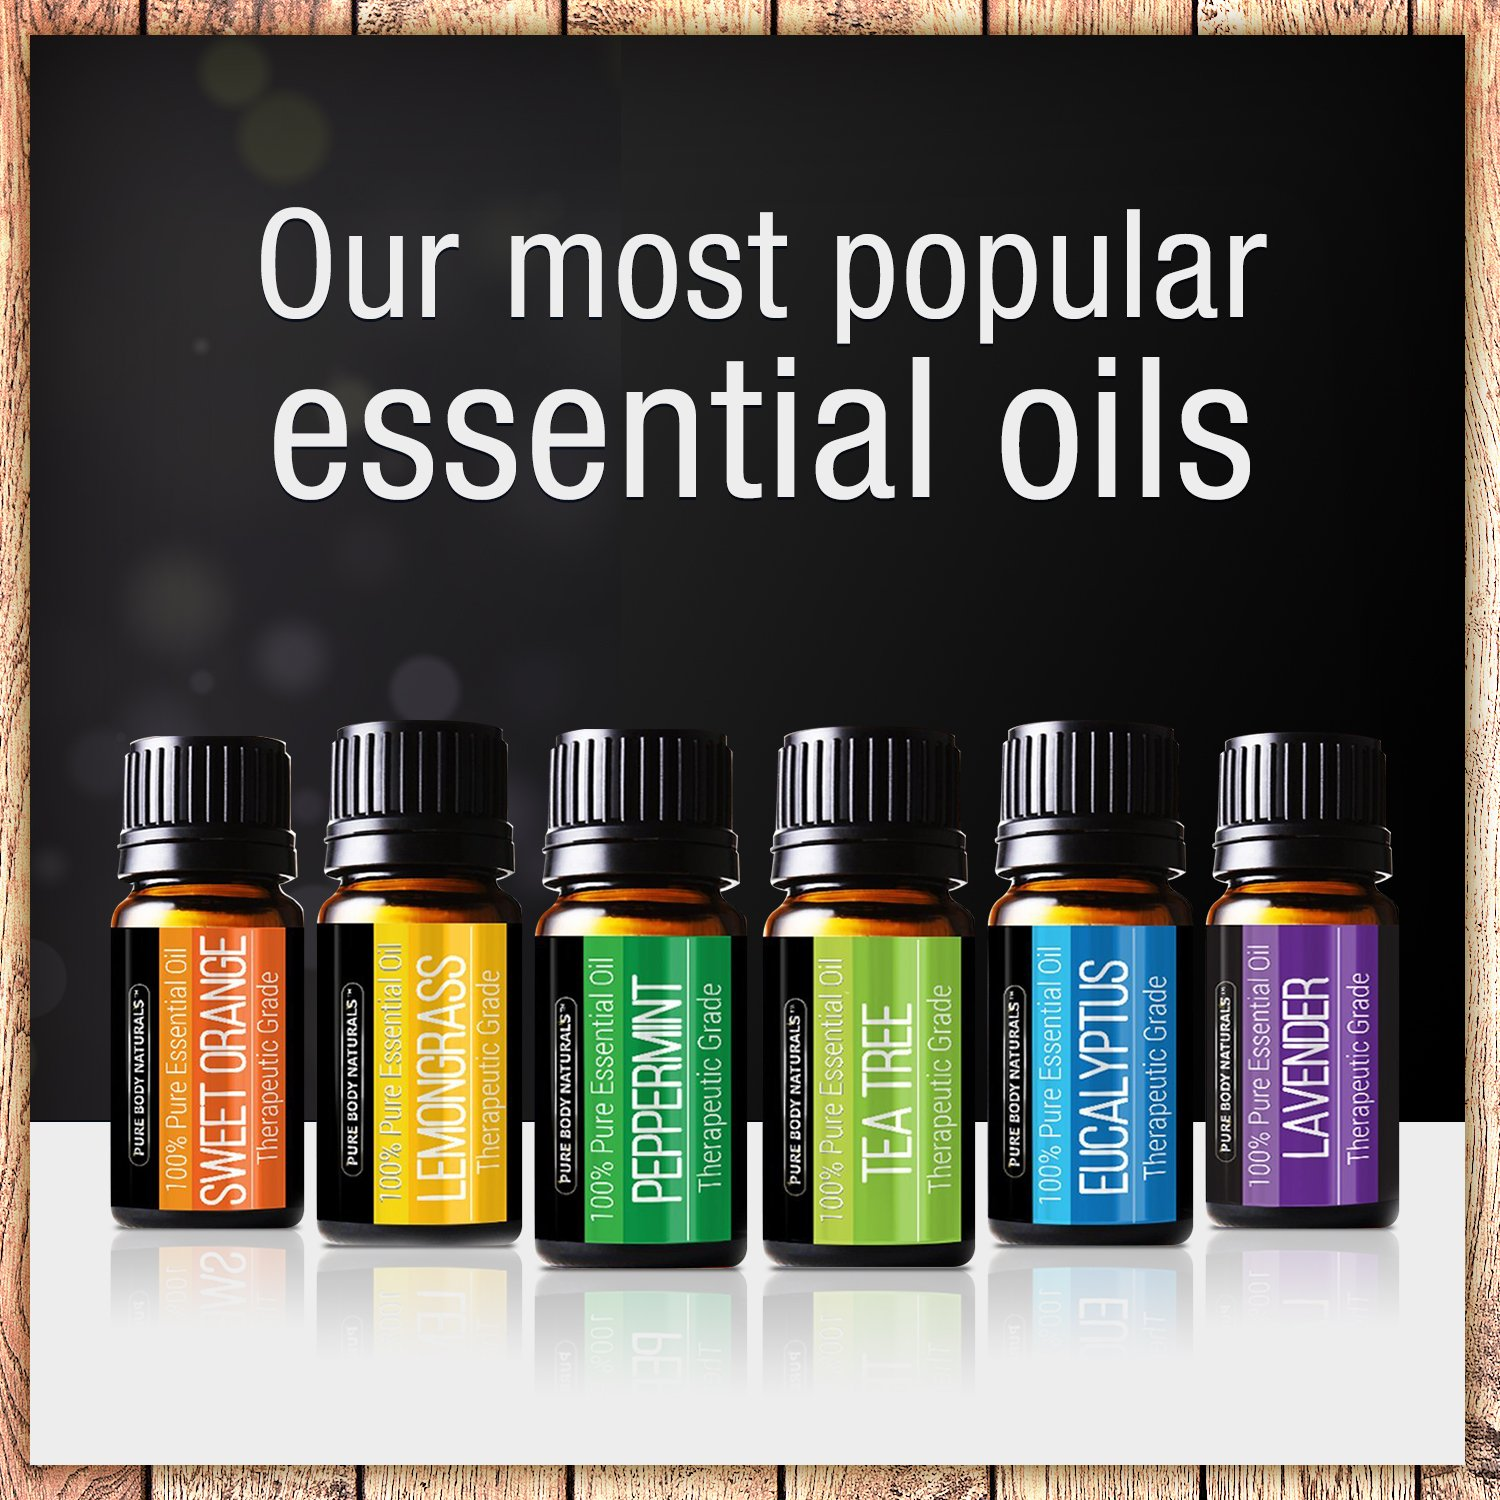 Pure Body Naturals Essential Oils Top